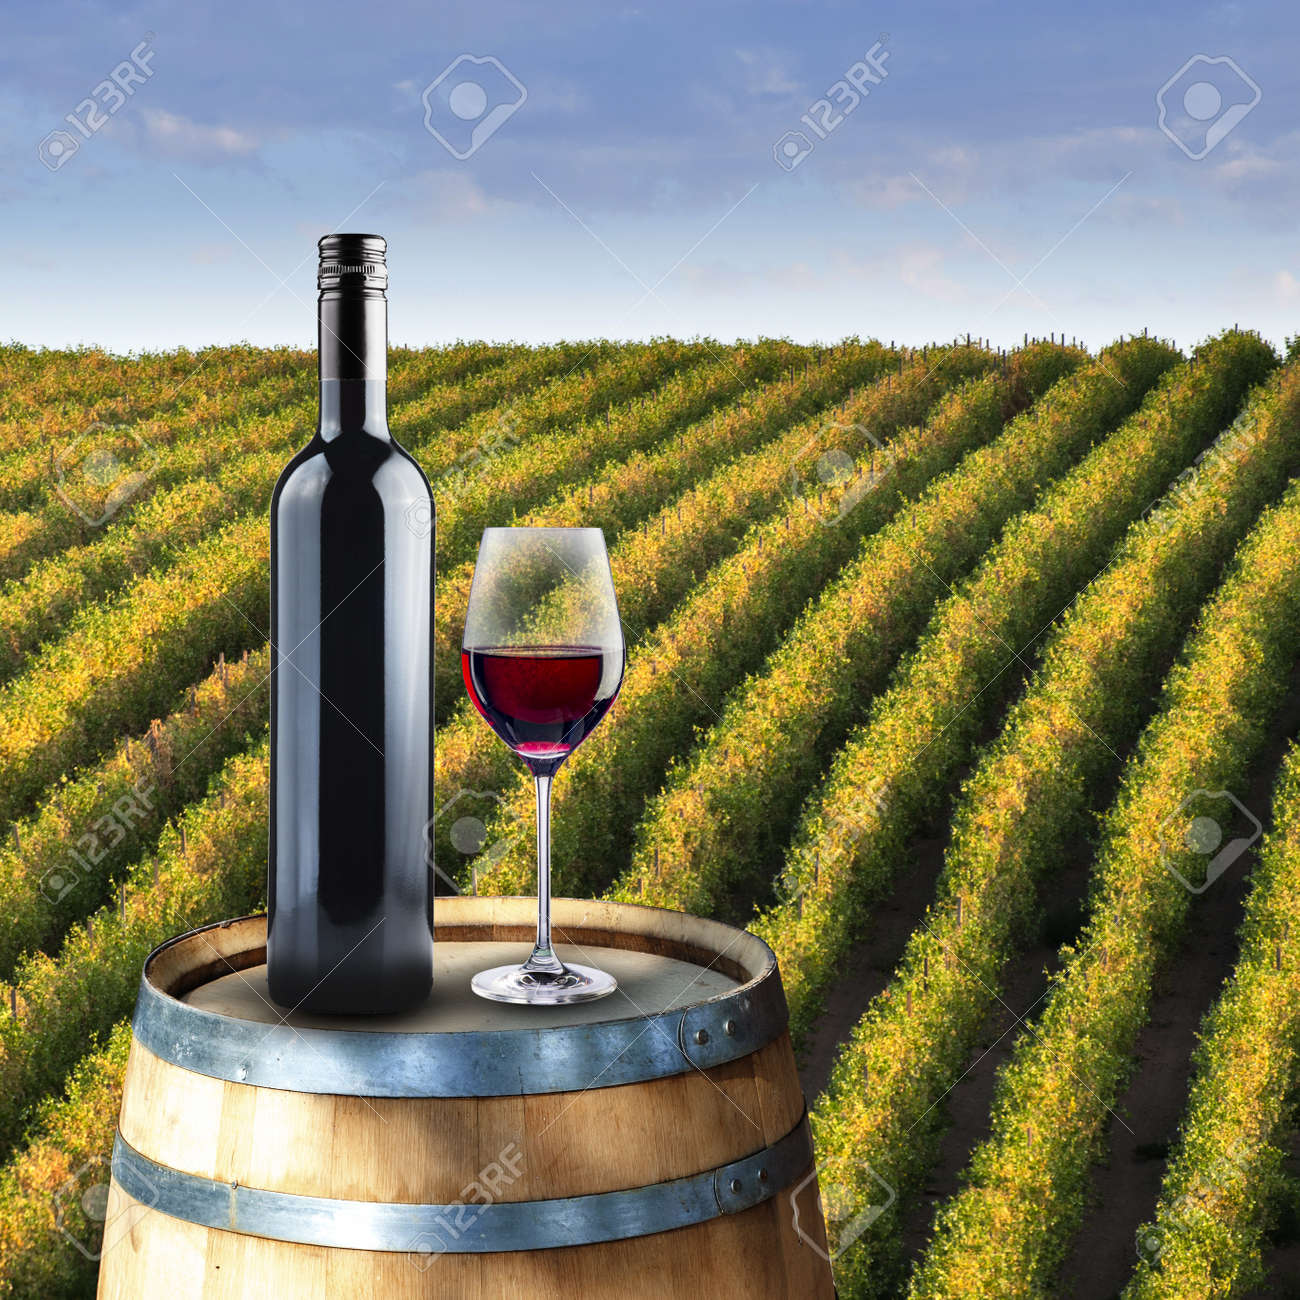 Bottle and glass of wine on wood barrel with vinyard background Stock Photo - 18249831